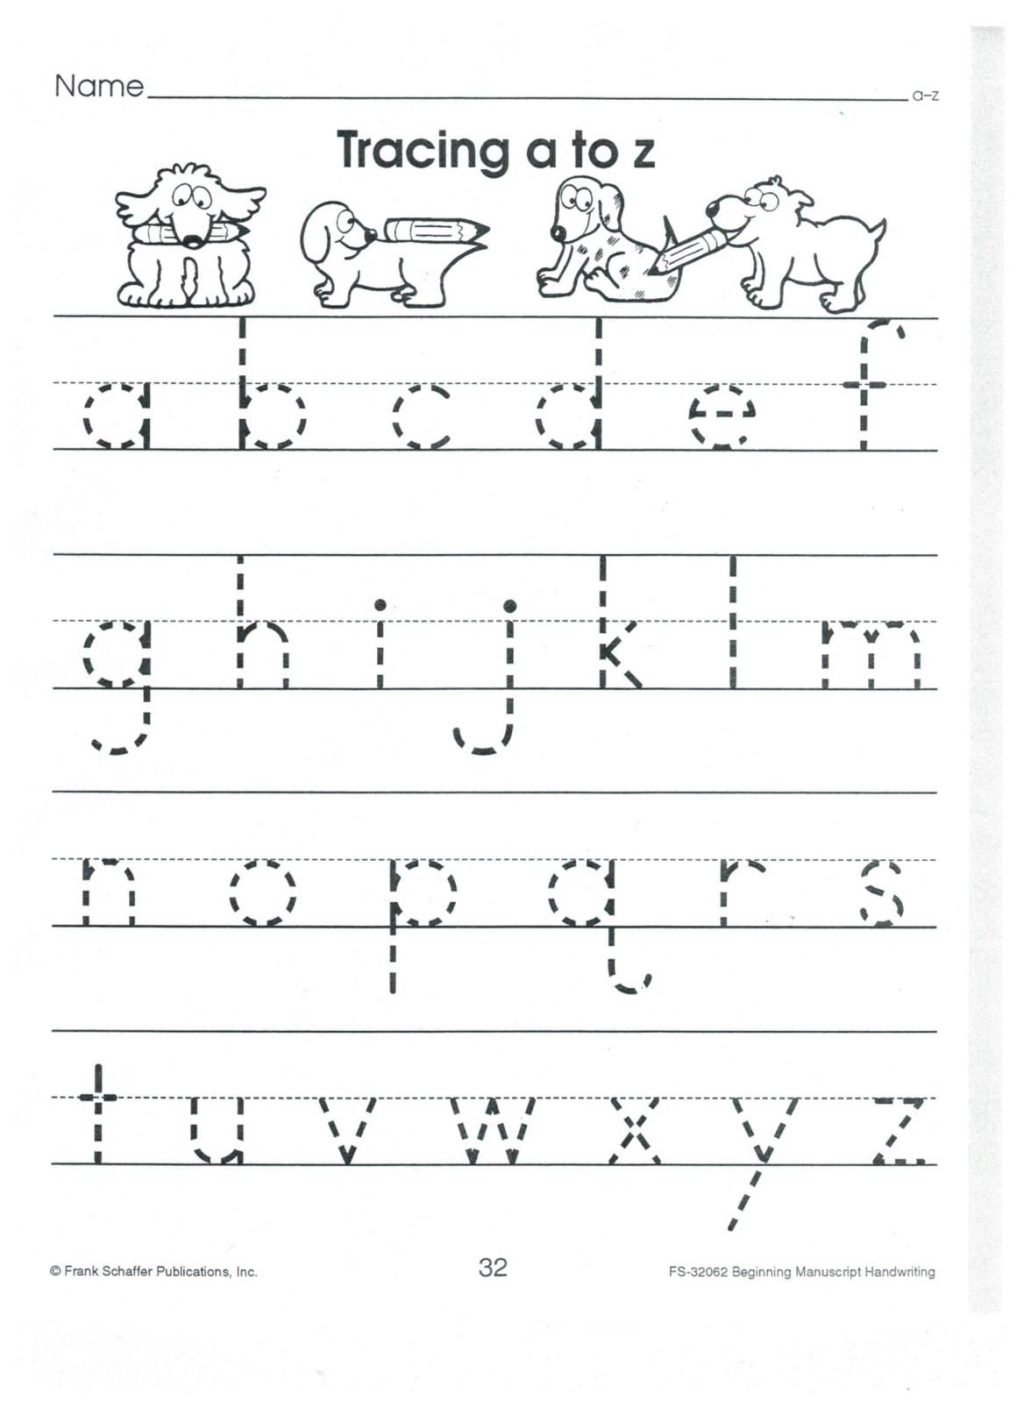 Worksheet ~ English Print To Z Lower Case Alphabet Tracing regarding Name Tracing Worksheets A To Z